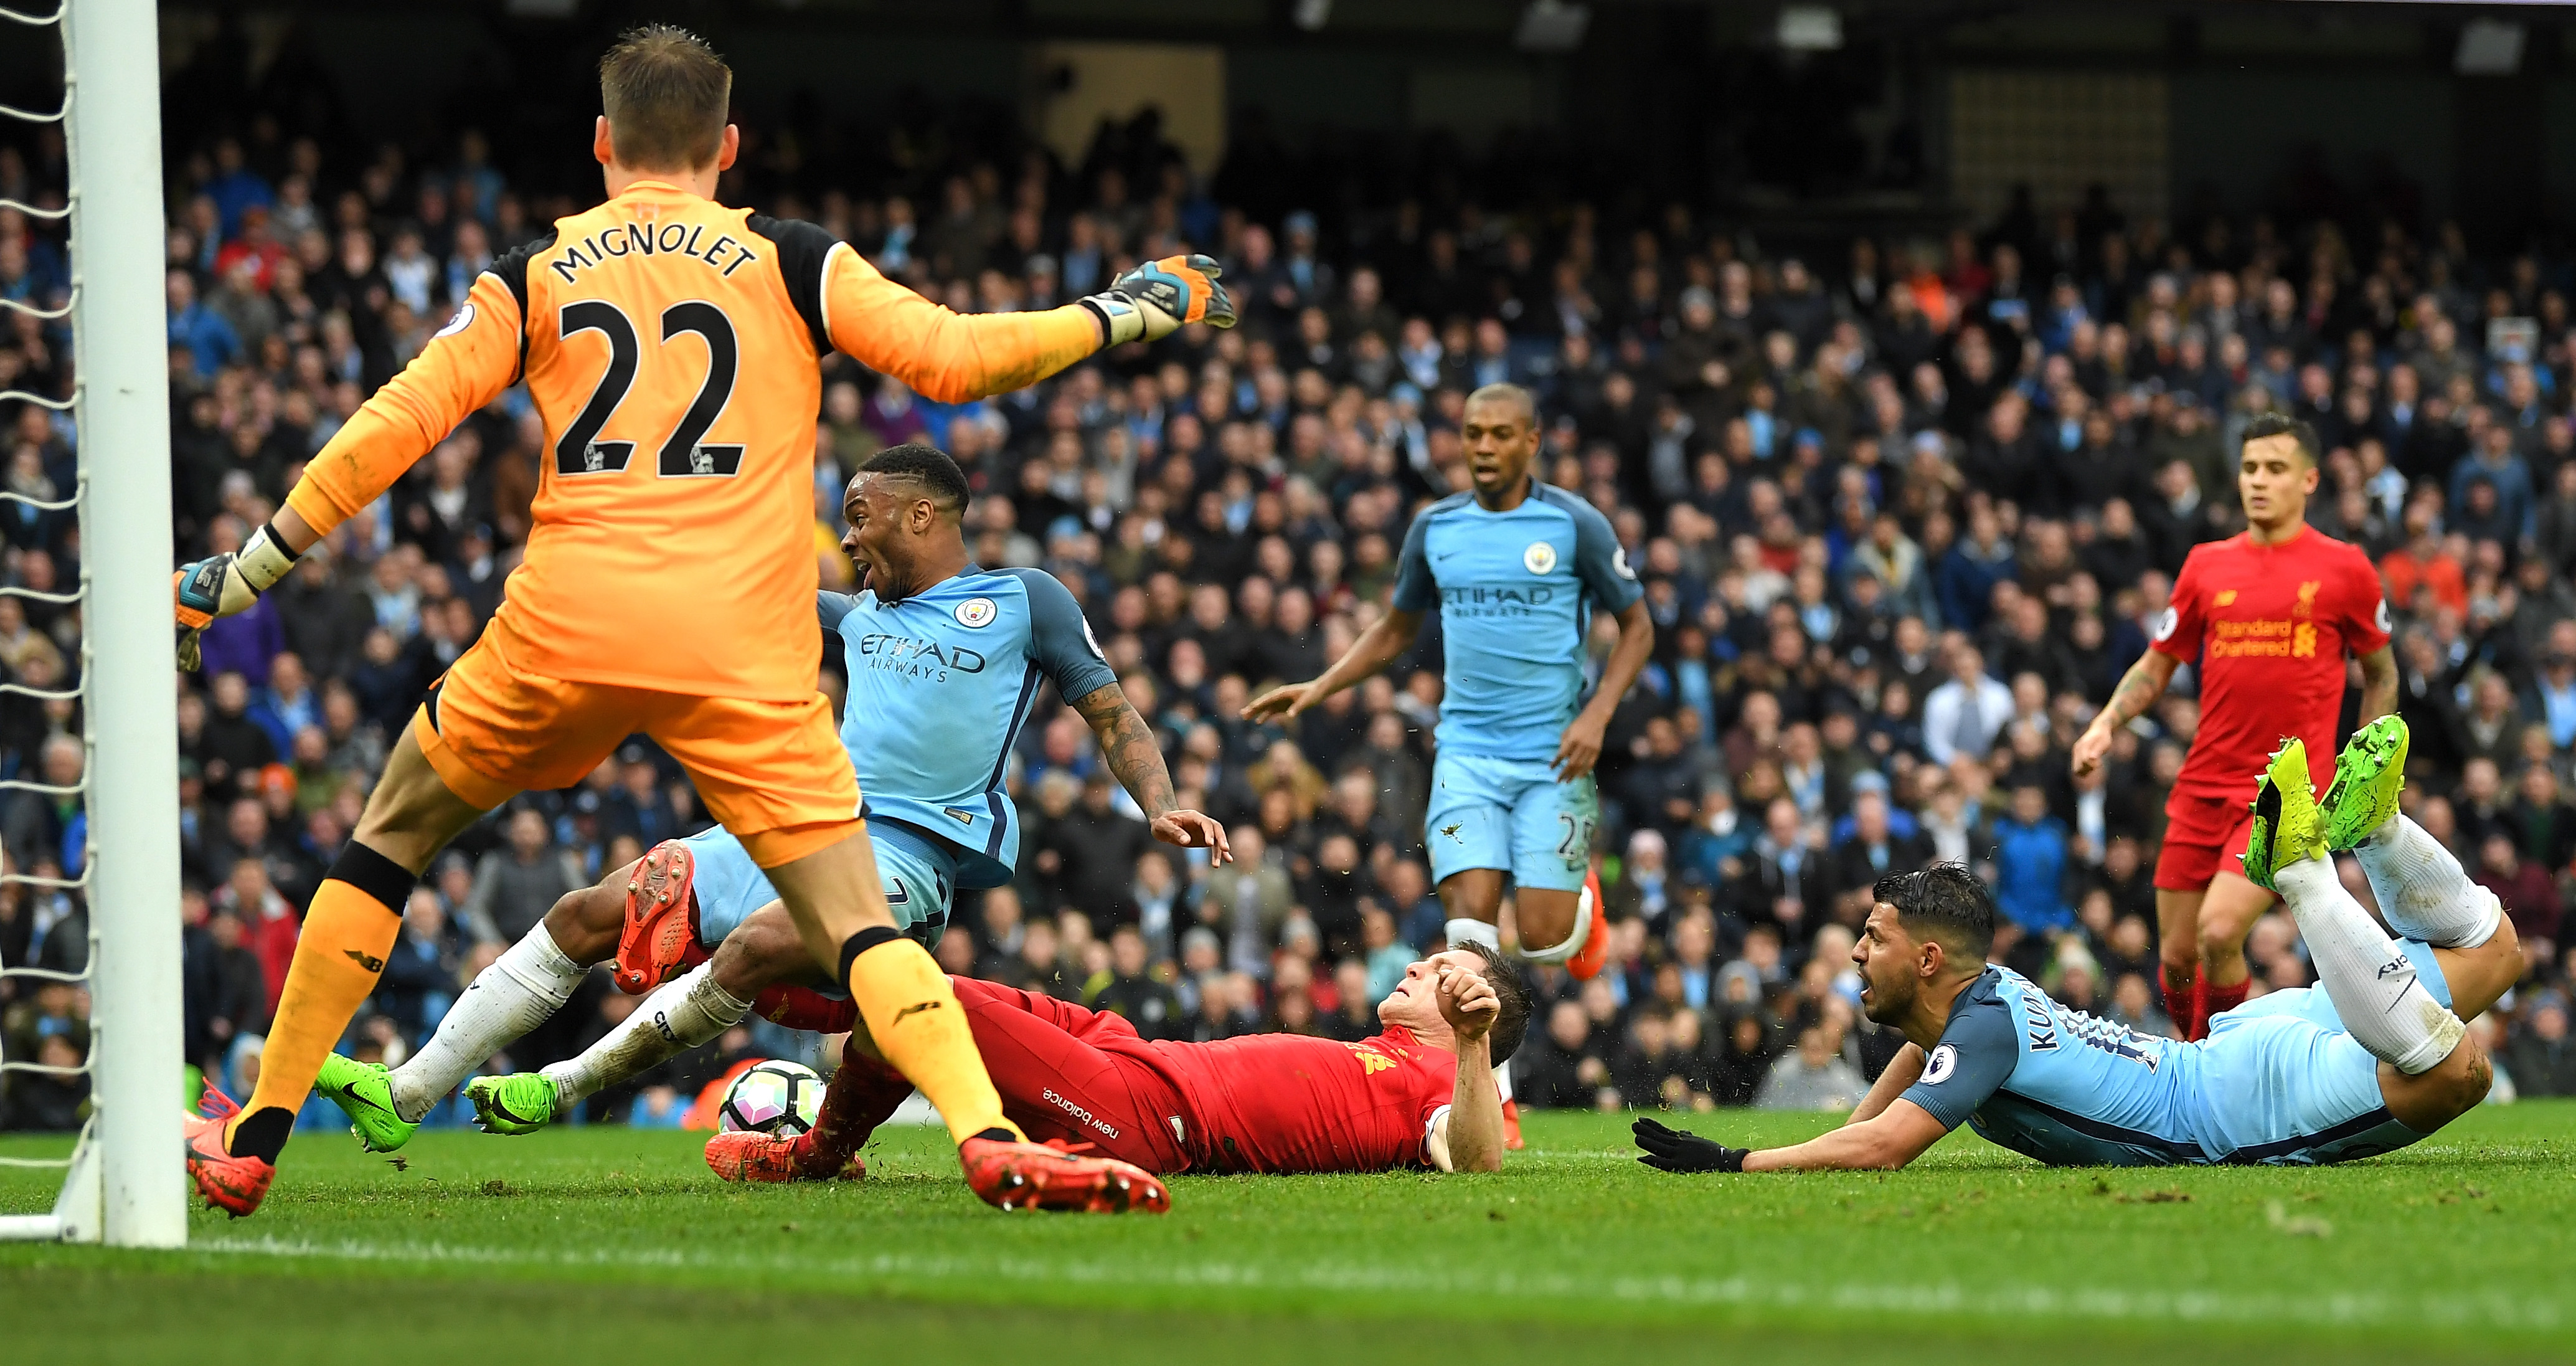 MANCHESTER, ENGLAND - MARCH 19: Raheem Sterling of Manchester City (L) is fouled by James Milner of Liverpool (C) in the penalty area during the Premier League match between Manchester City and Liverpool at Etihad Stadium on March 19, 2017 in Manchester, England.  (Photo by Laurence Griffiths/Getty Images)